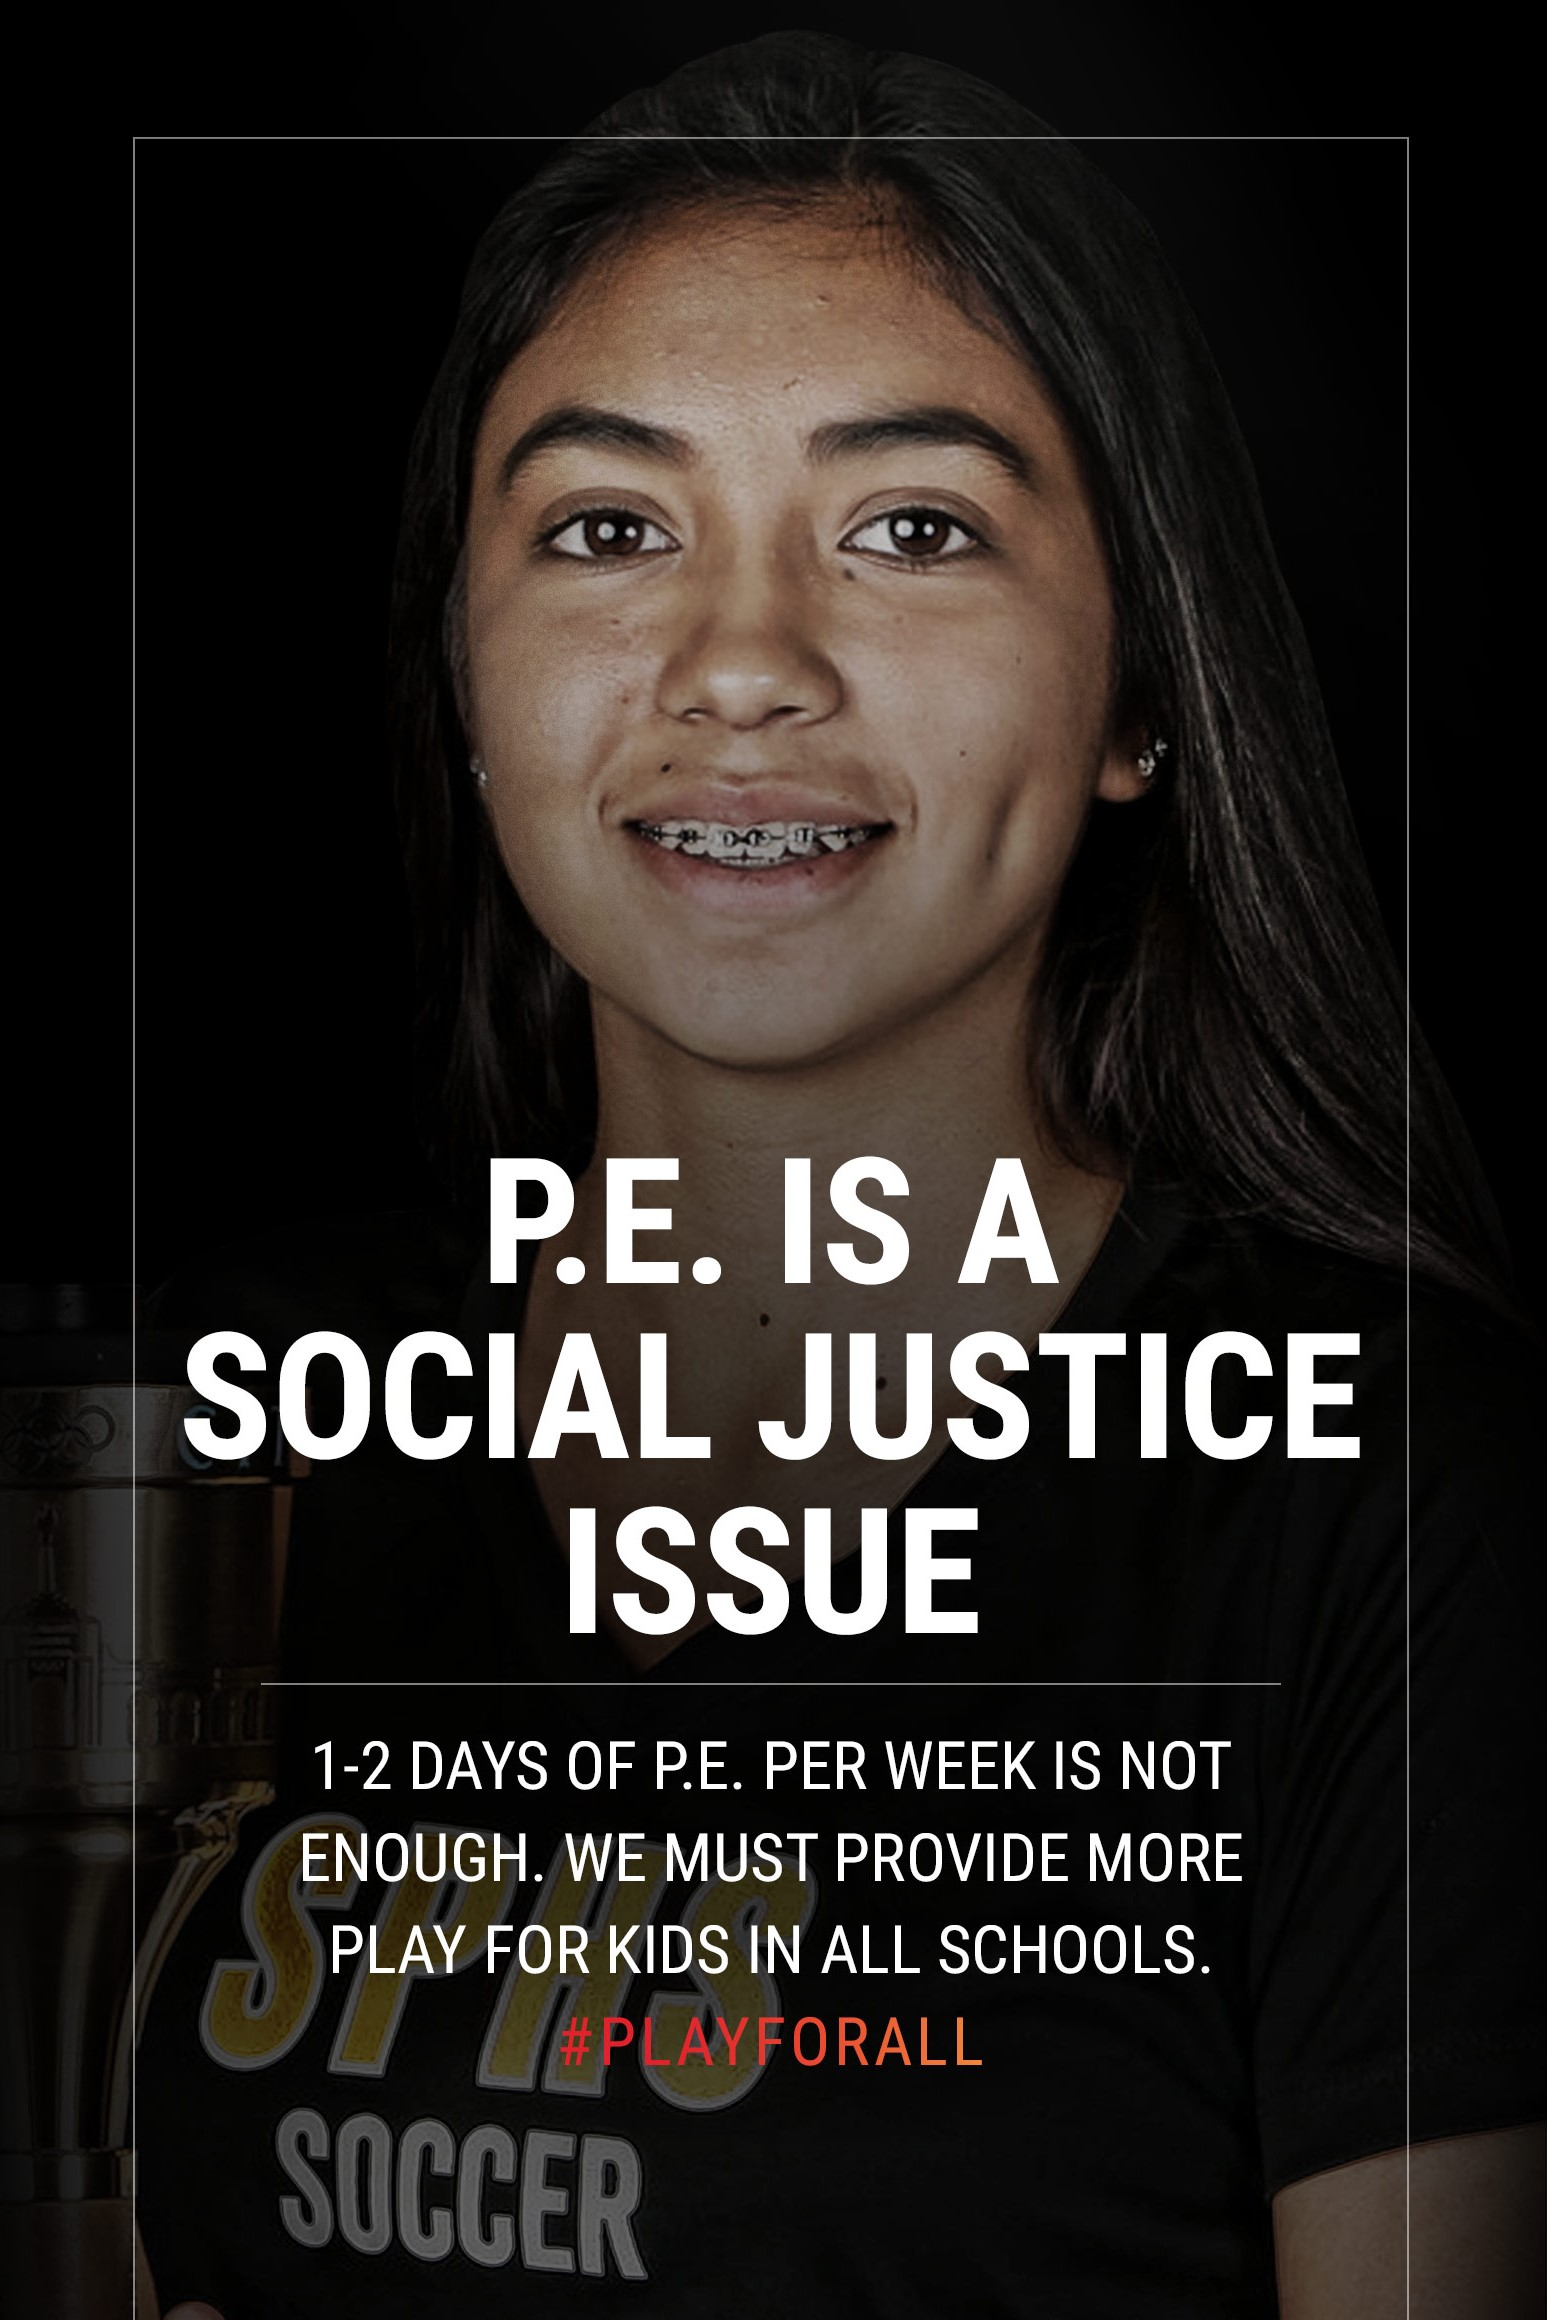 P.E.-Is-A-Social-Justice-Issue-10-1-17-website